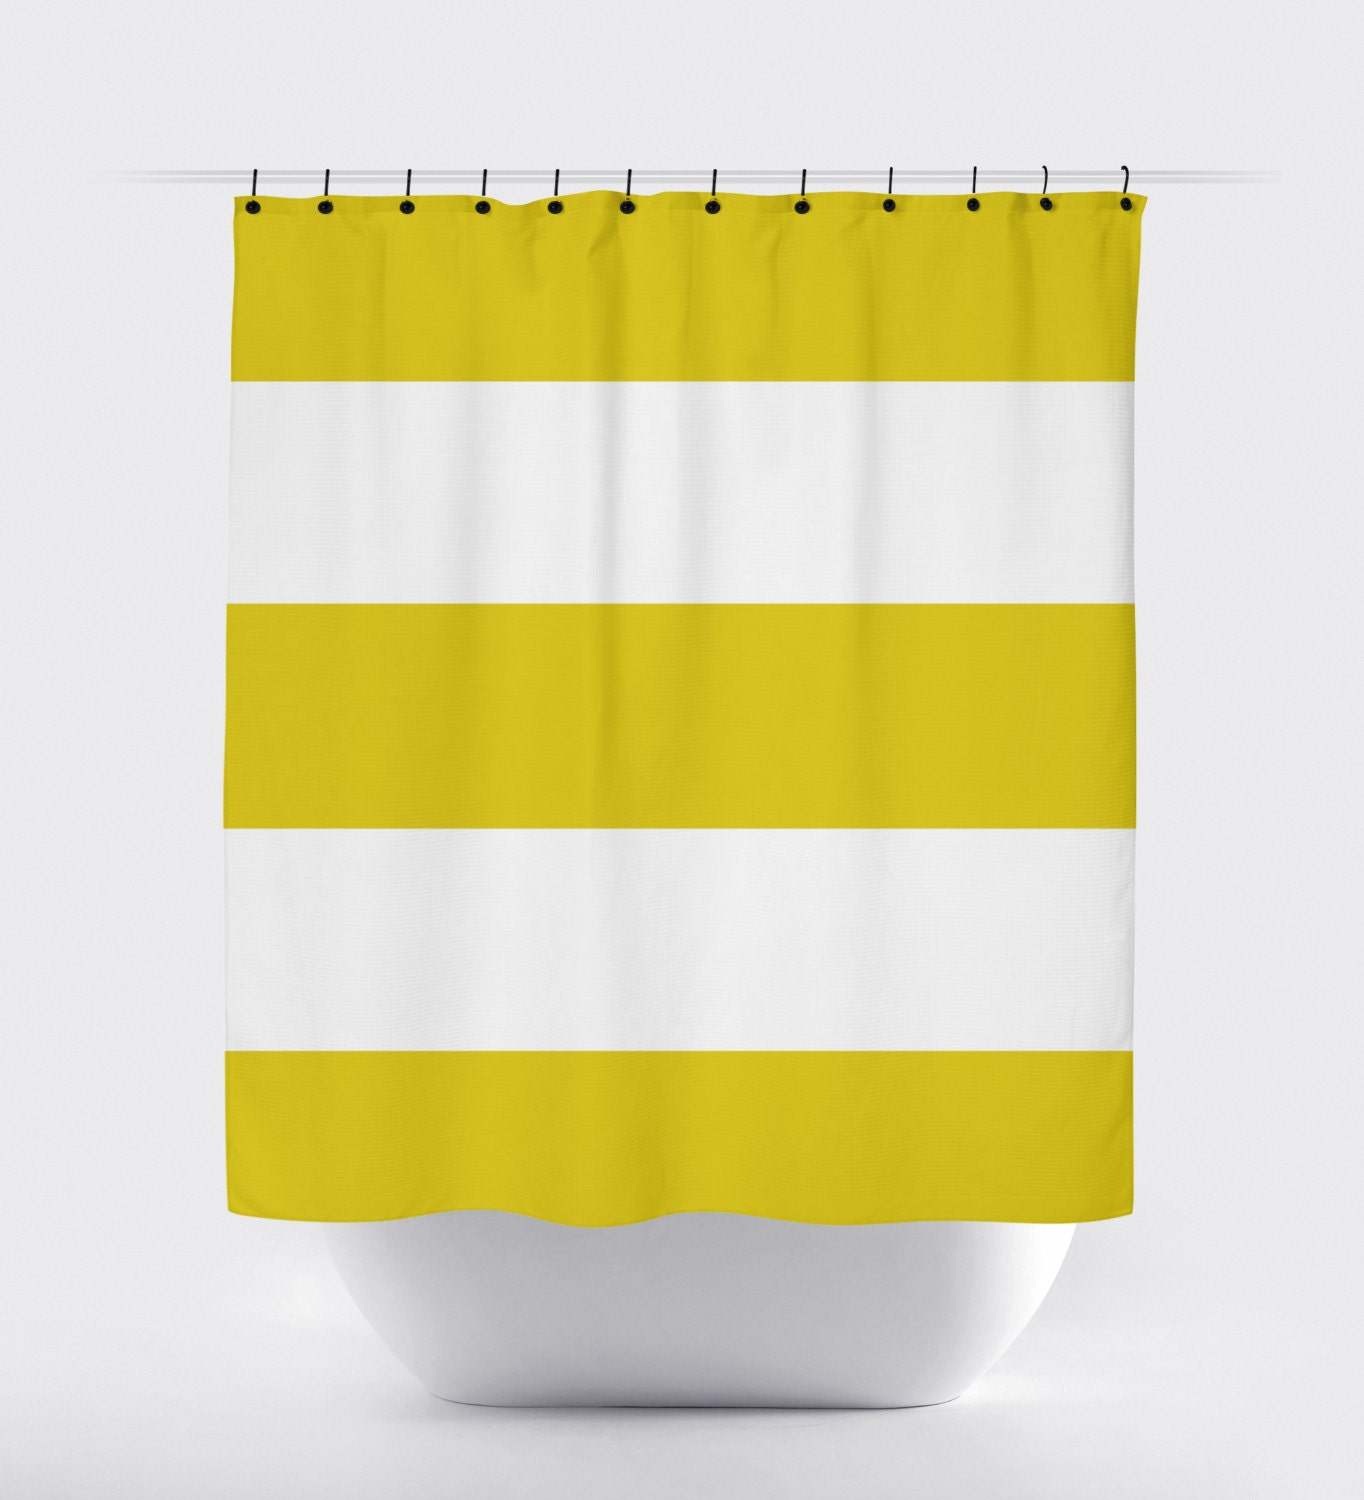 yellow style curtains shower for striped every curtain bathroom